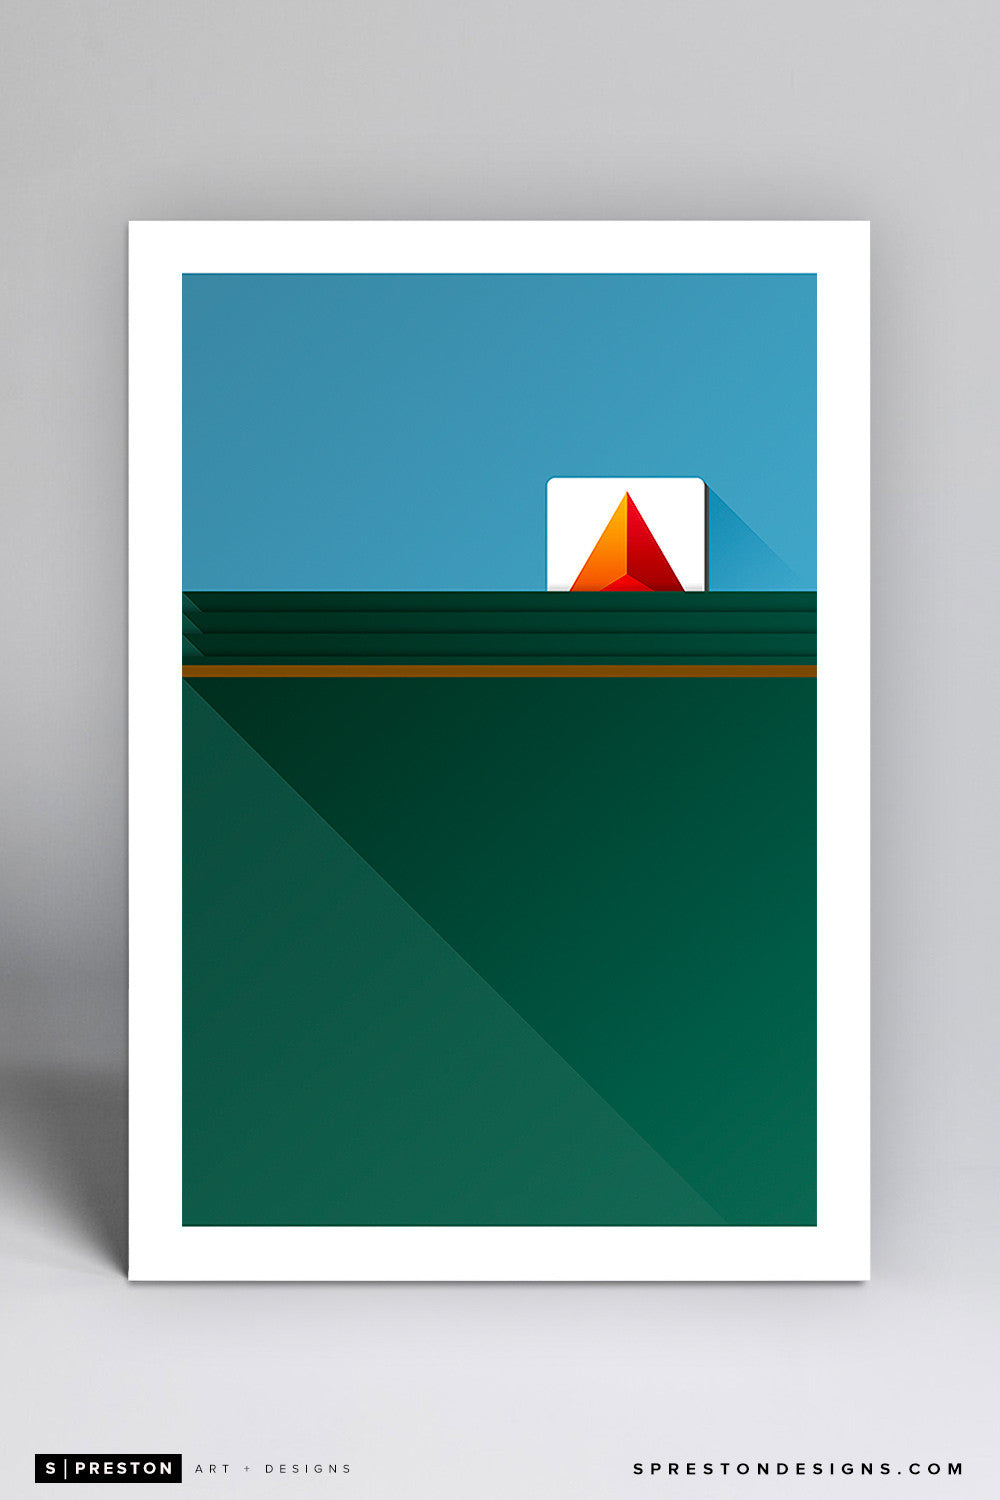 Minimalist Fenway Park Art Print - Boston Red Sox - S. Preston Art + Designs